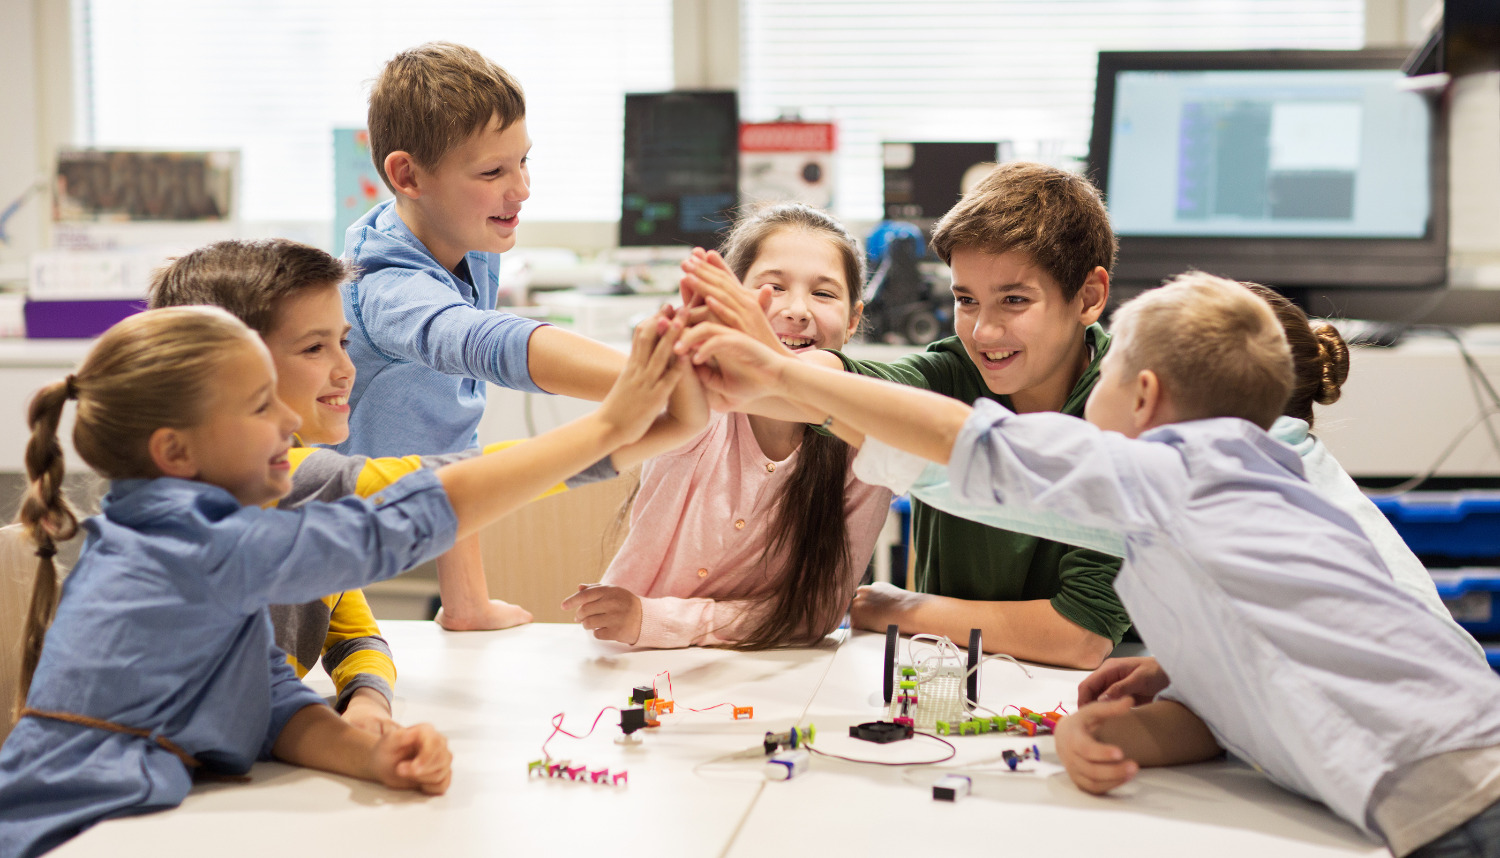 education, children, technology, science and people concept - group of happy kids building robots an